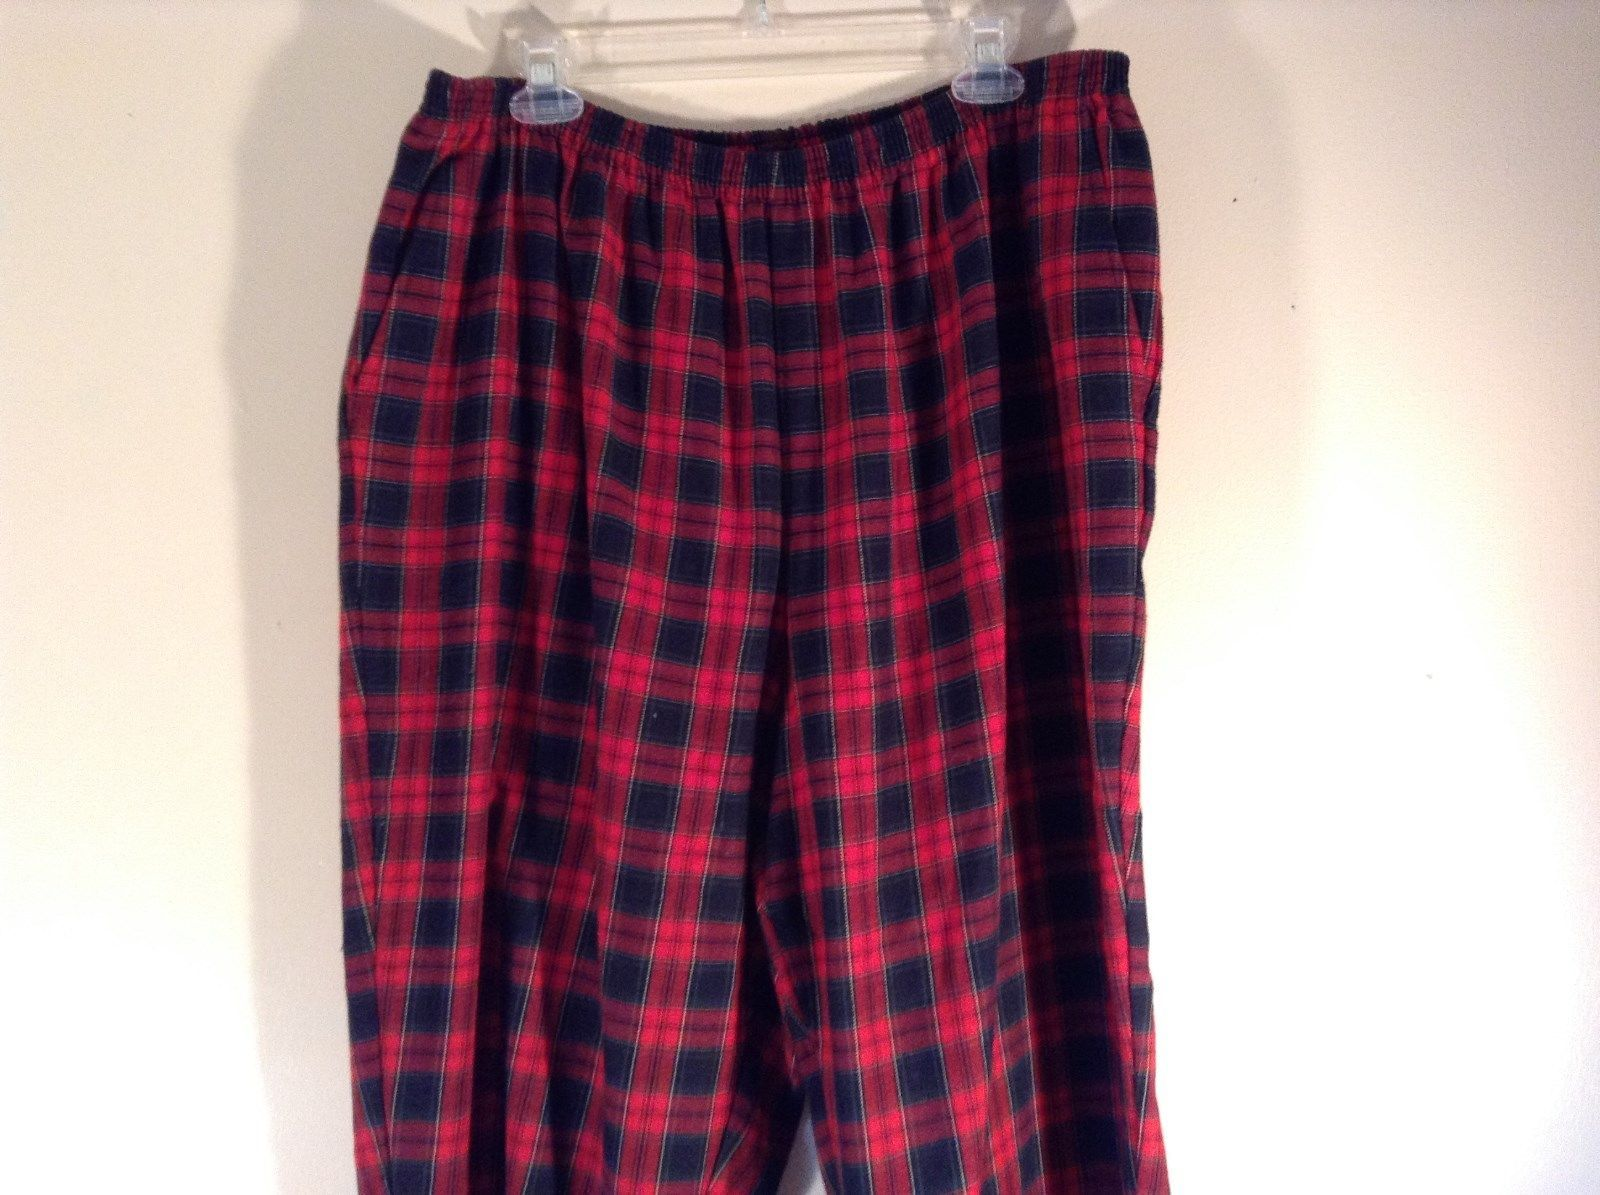 Size 22W Red Blue Plaid Alfred Dunner Stretchy Waist Lounge Pants Pajama Bottom